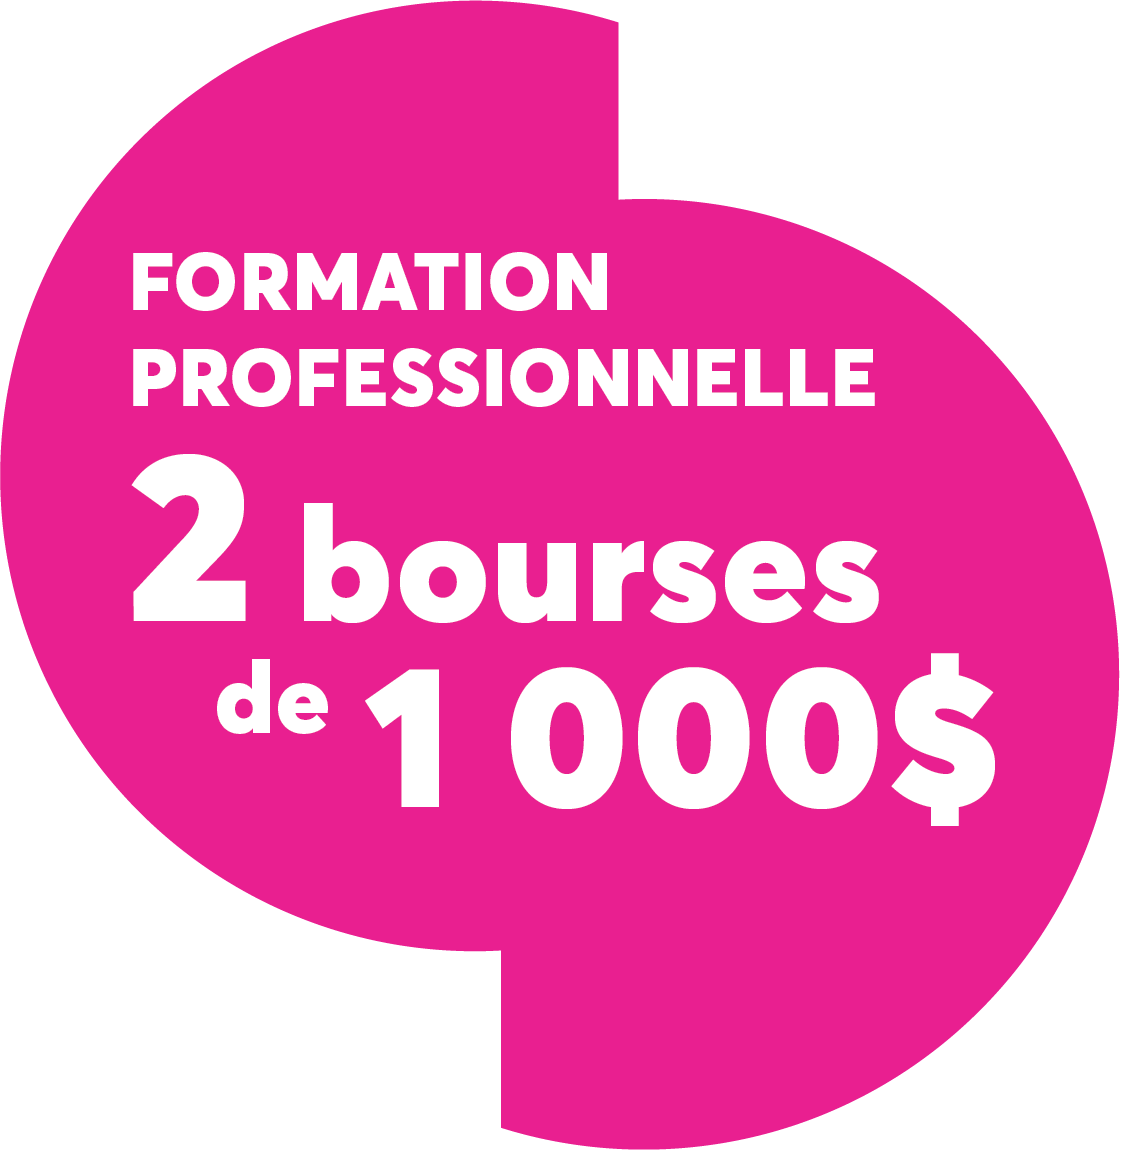 Formation-professionnelle@4x.png